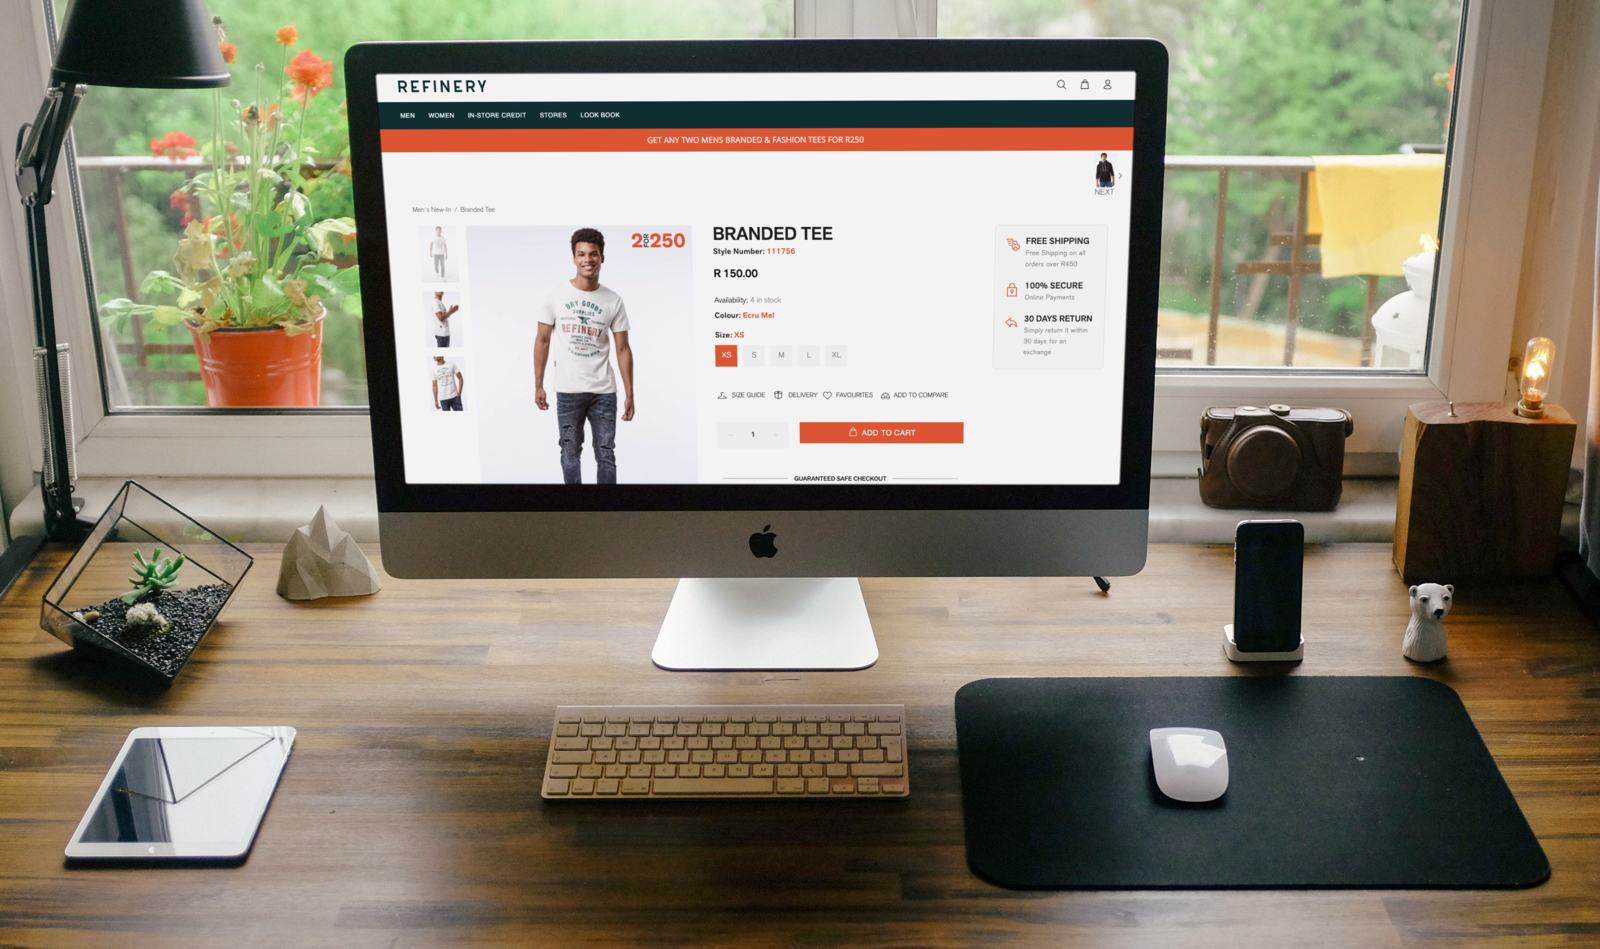 Refinery - Shopify Website Build, ERP & Warehouse